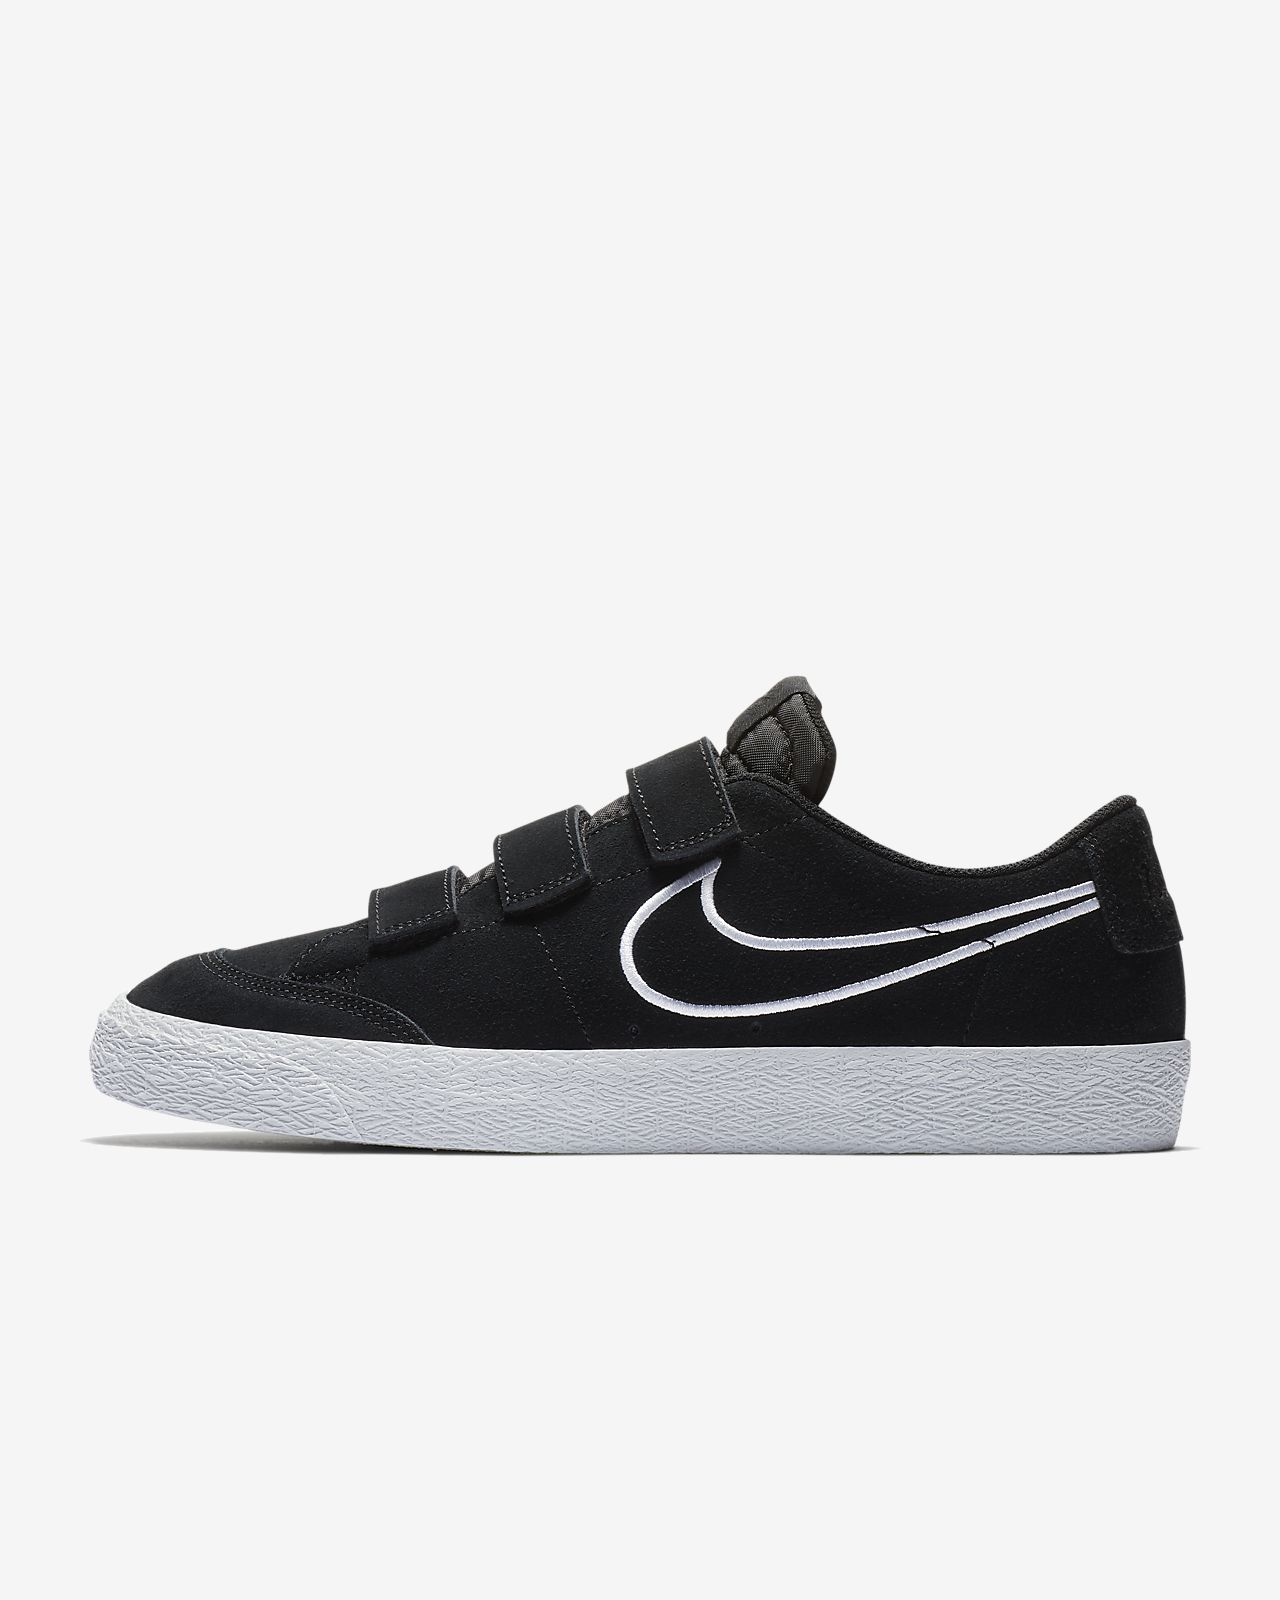 Noir Chaussures Nike Sb Collection Taille 46 Hommes VUu6FI